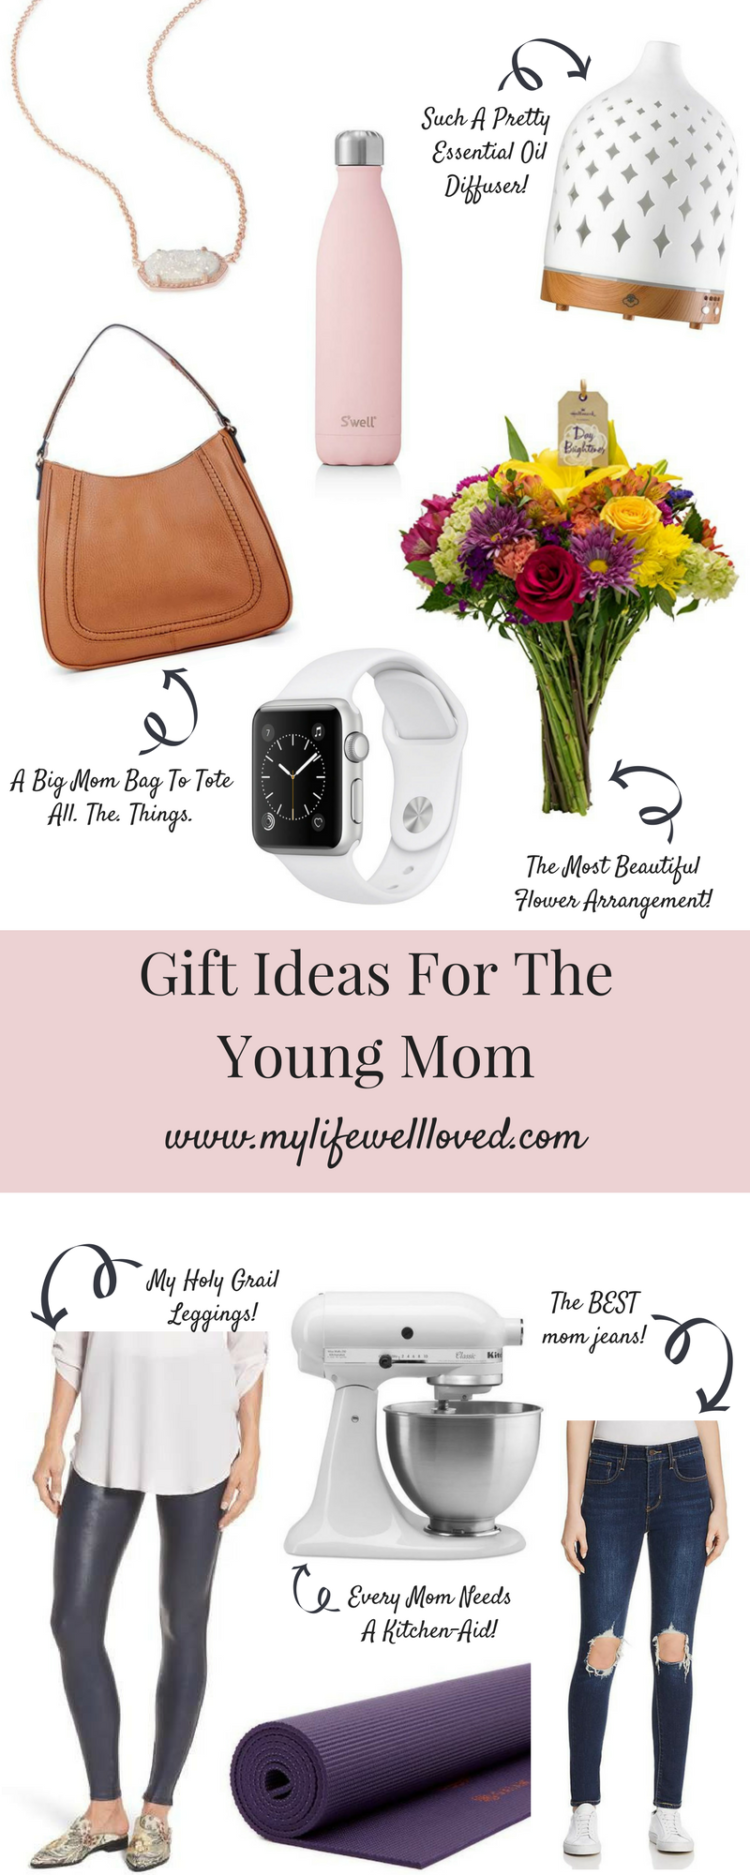 All the gift ideas you could need for a young mom by Birmingham healthy life + style blogger, Heather Brown. #mothersday #giftsforher #giftguide